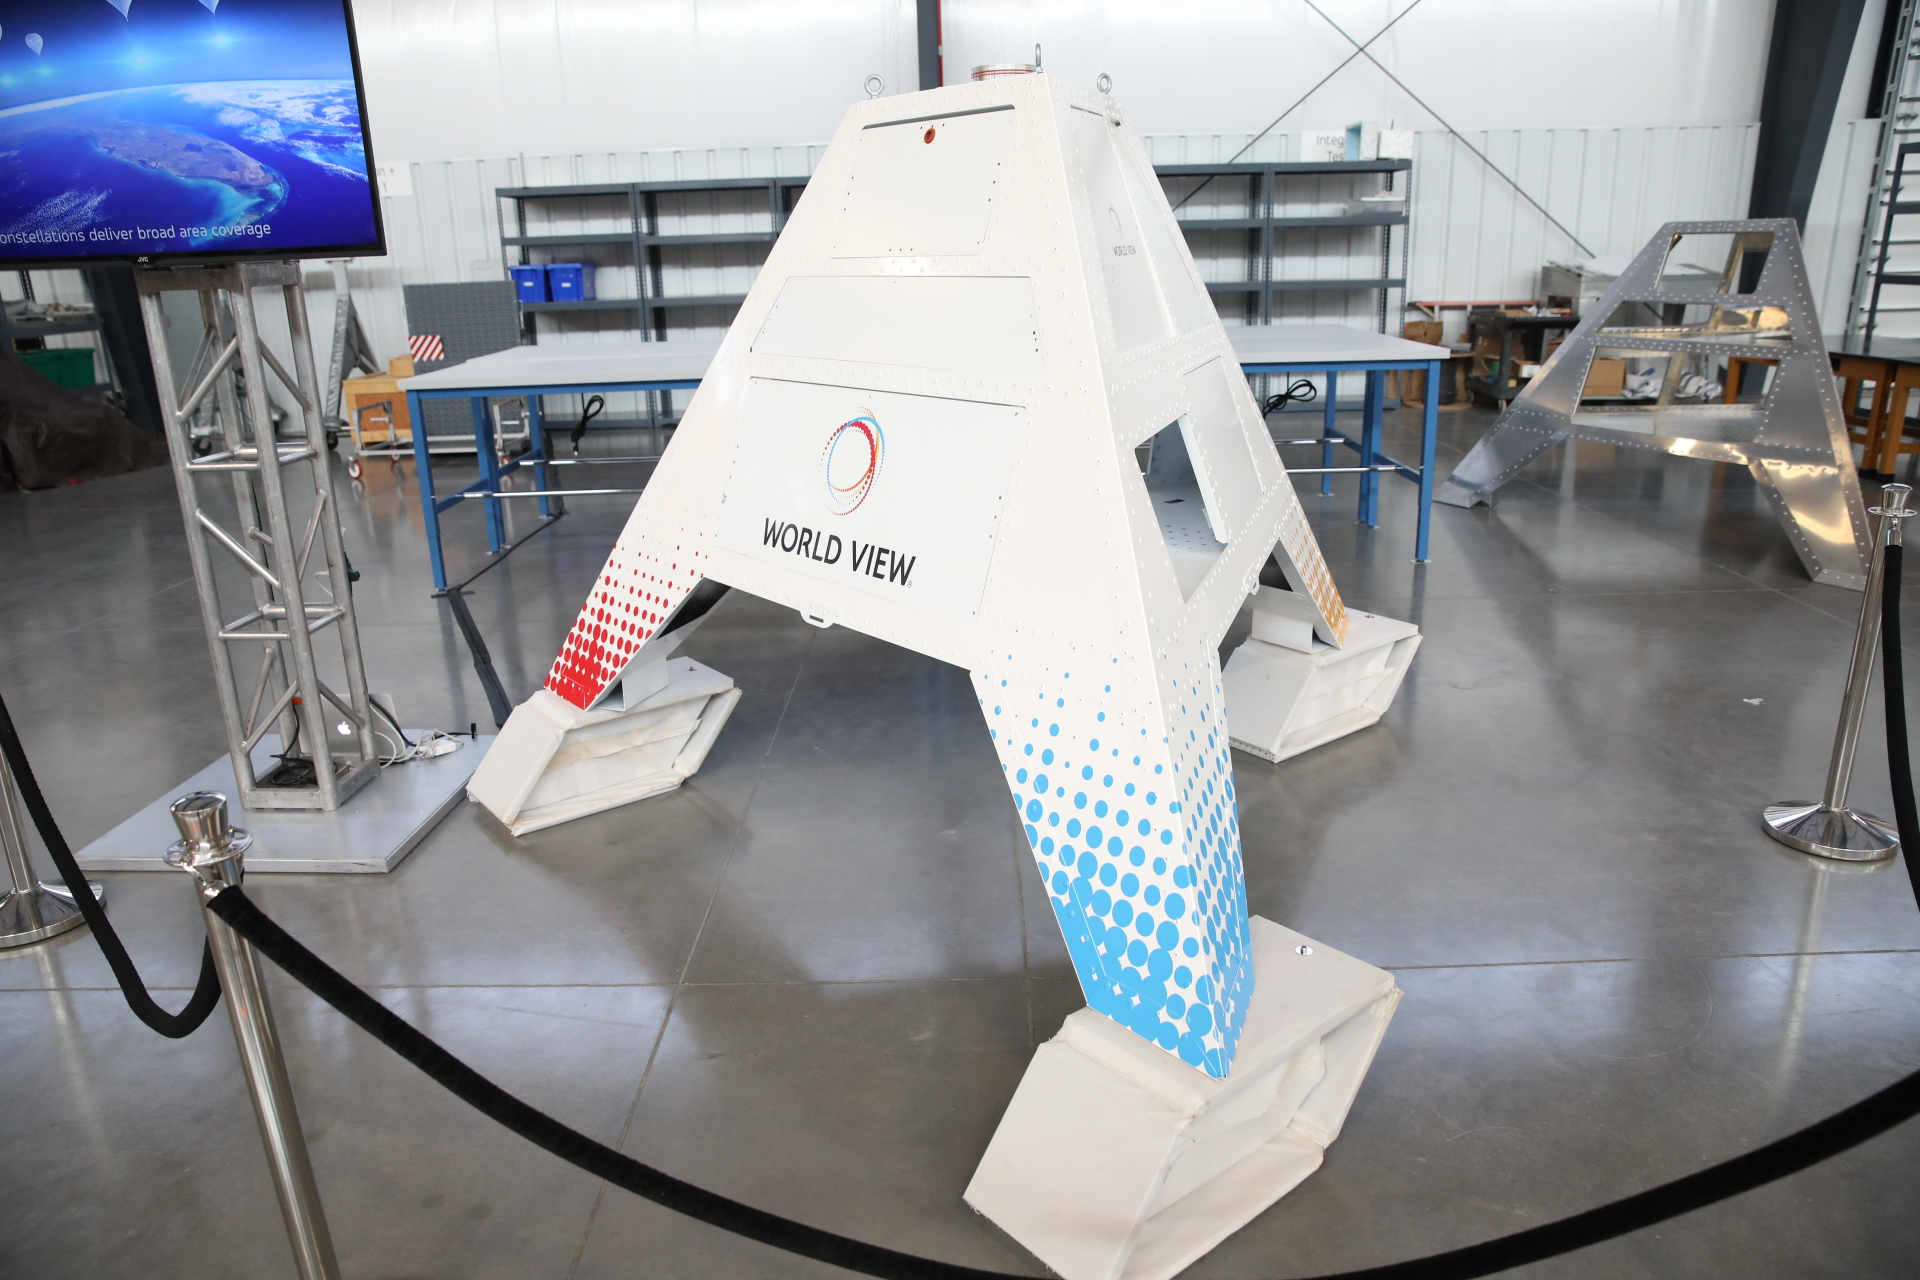 A stratollite, which can be equipped with various sensors and other payloads.